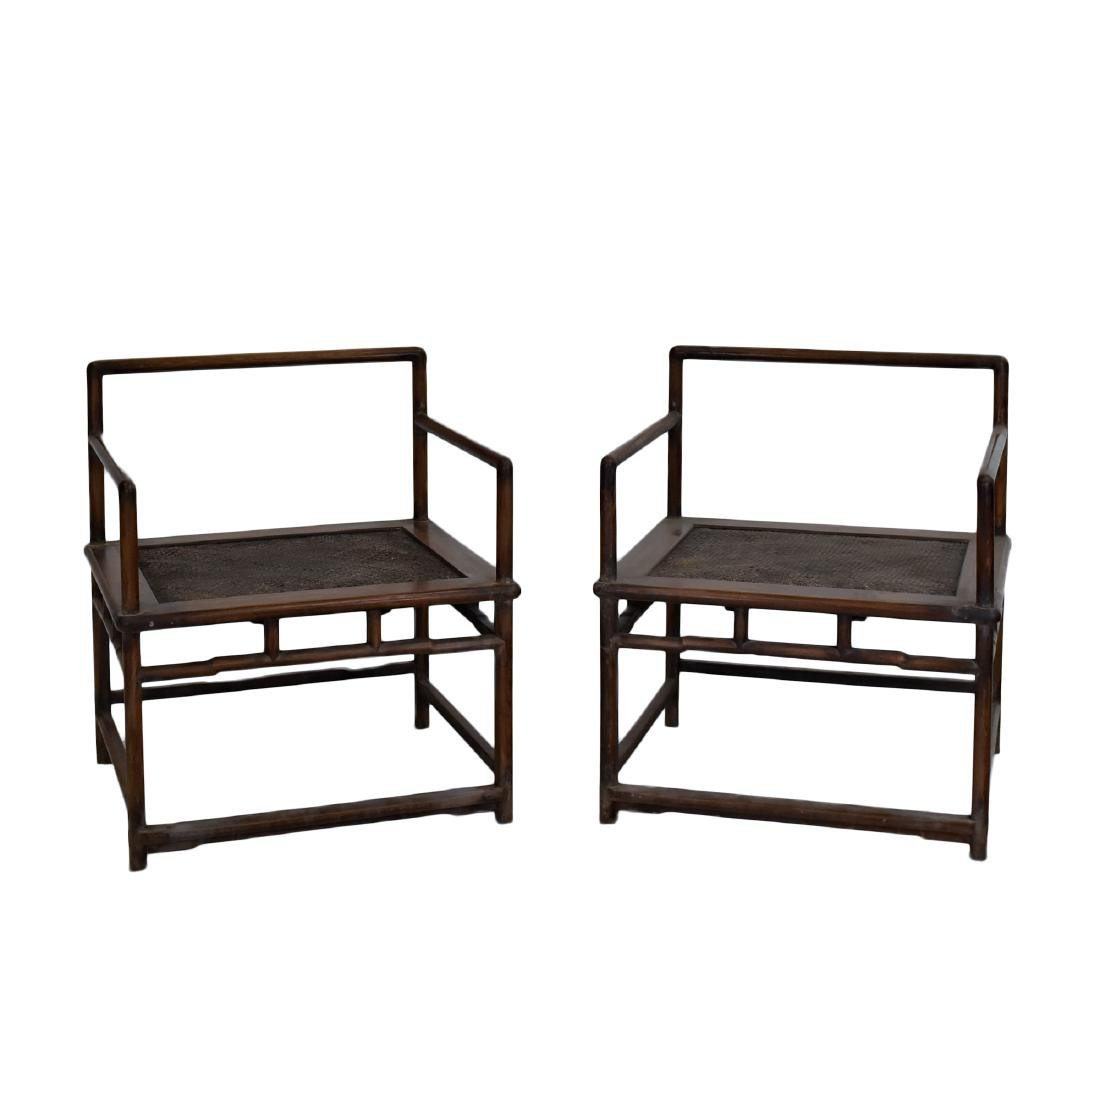 18/19TH C. PAIR OF HUANGHUALI WOOVEN ARMCHAIRS